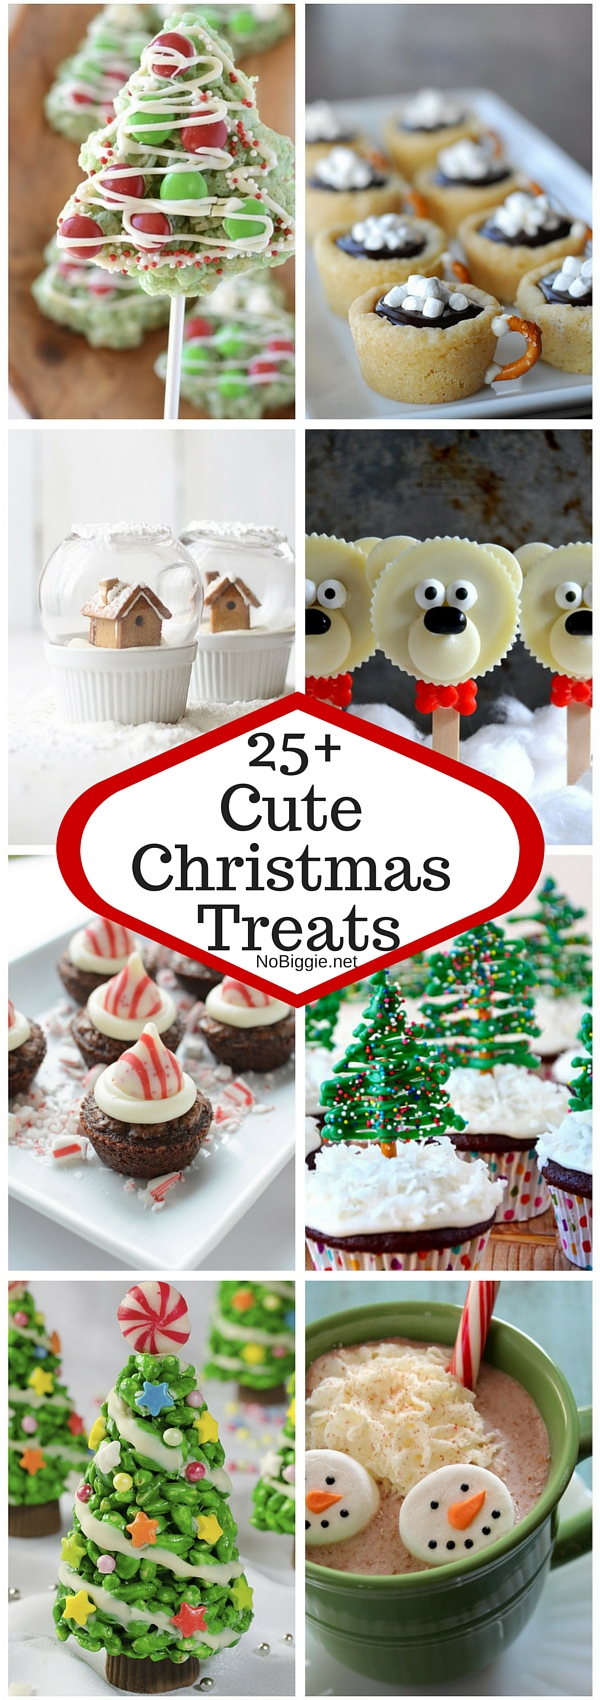 http://www.nobiggie.net/wp-content/uploads/2015/12/25-Cute-Christmas-Treats.jpg